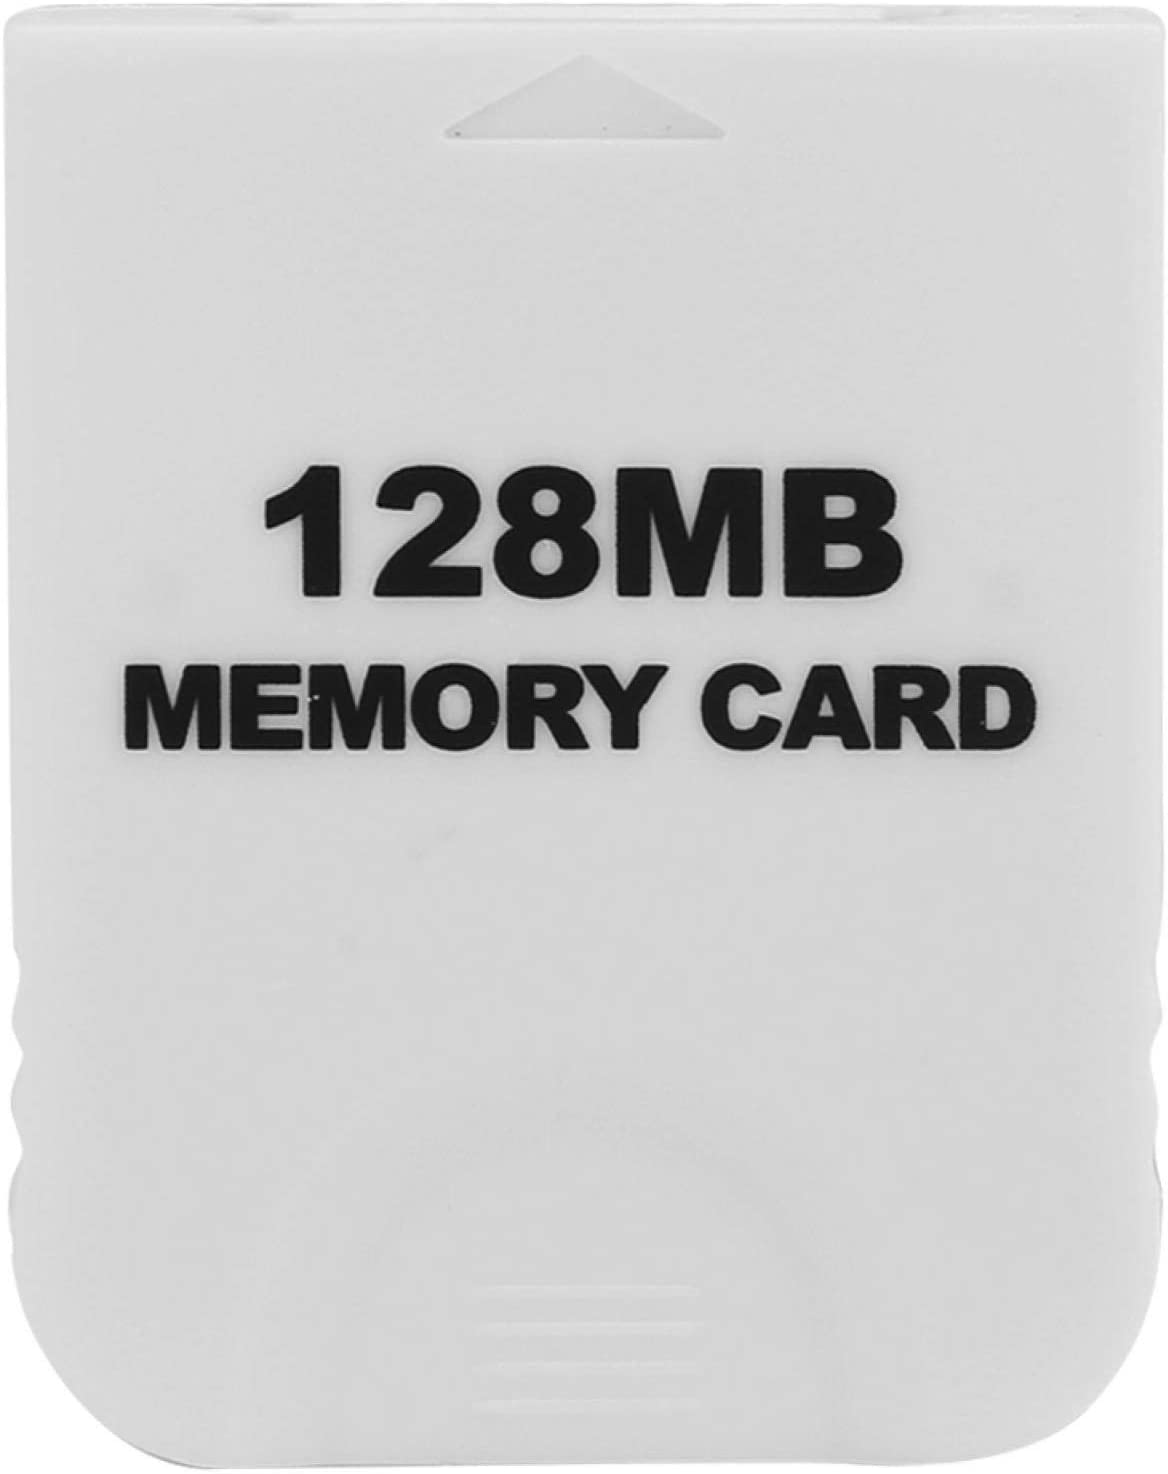 Max 63% OFF T osuny Memory Card 64MB Bargain sale 128MB Wii for Eas NGC Compatible